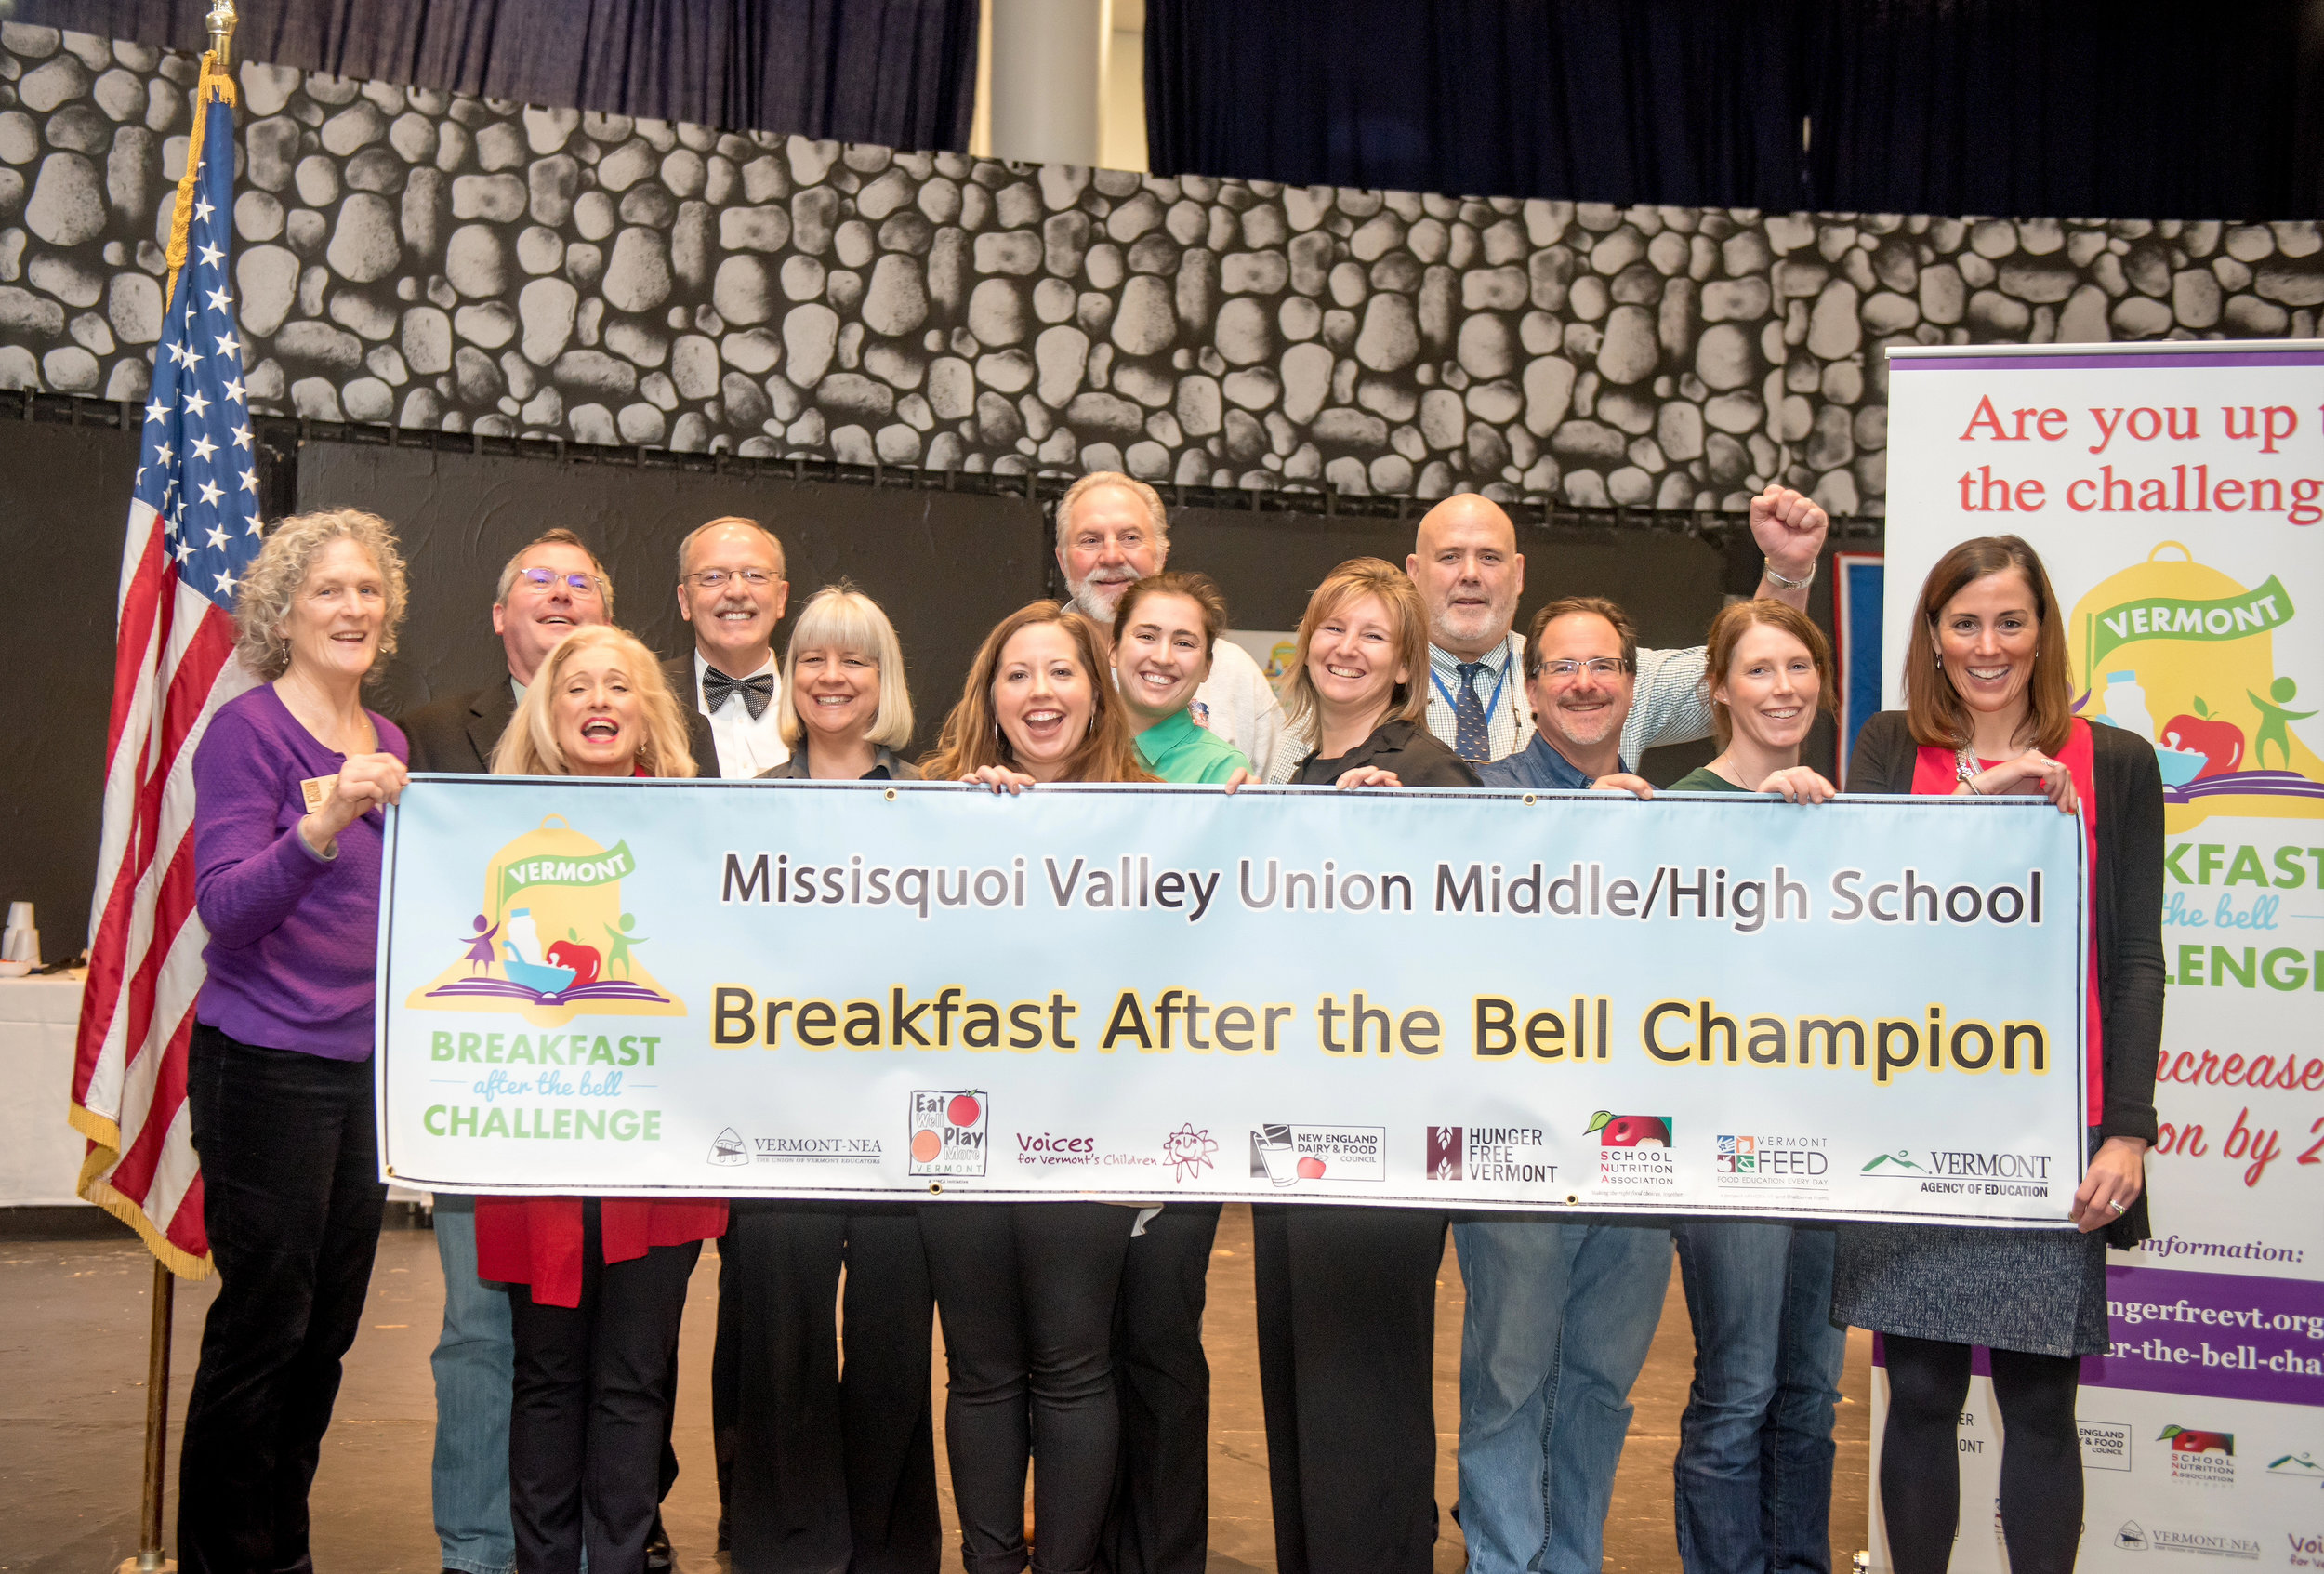 This photo is of the Round 2 top winner: Missisquoi Valley Union Middle/High School (MVU). After one year, they witnessed a 642% increase in breakfast participation. MVU offers universal (free) breakfast in the classroom to all students.